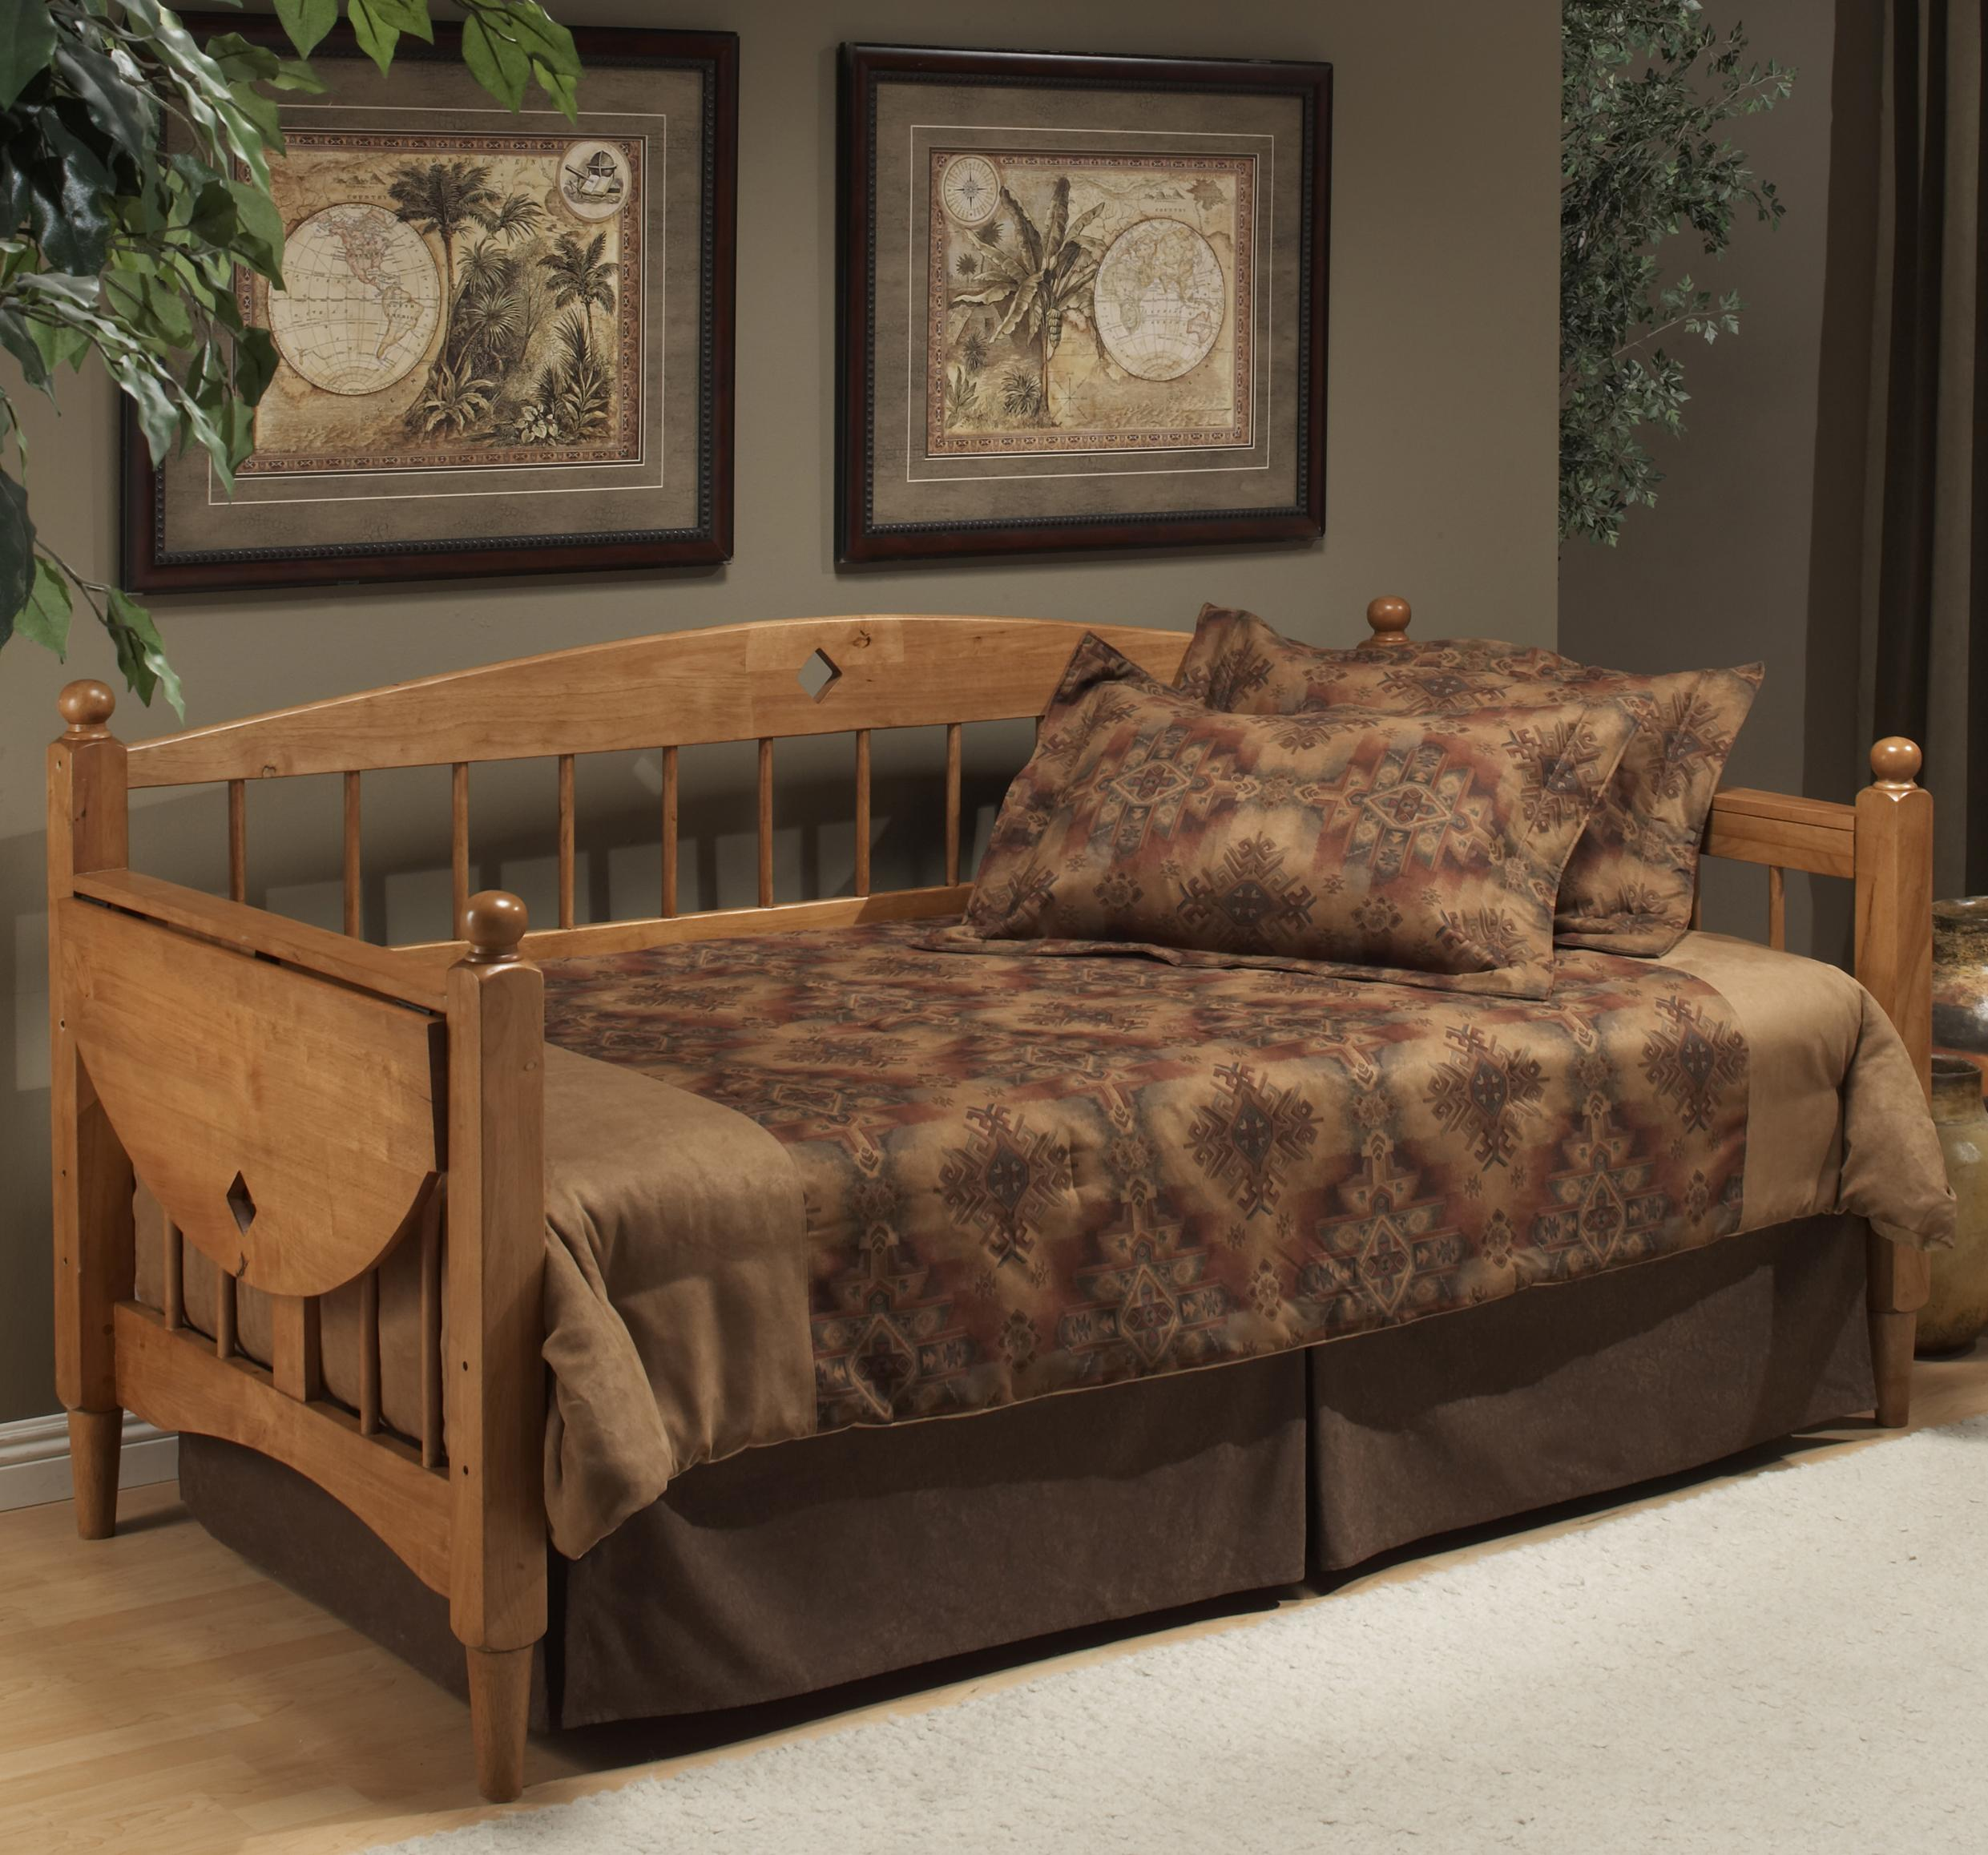 Hillsdale Daybeds Twin Dalton Daybed - Item Number: 1393DBLH